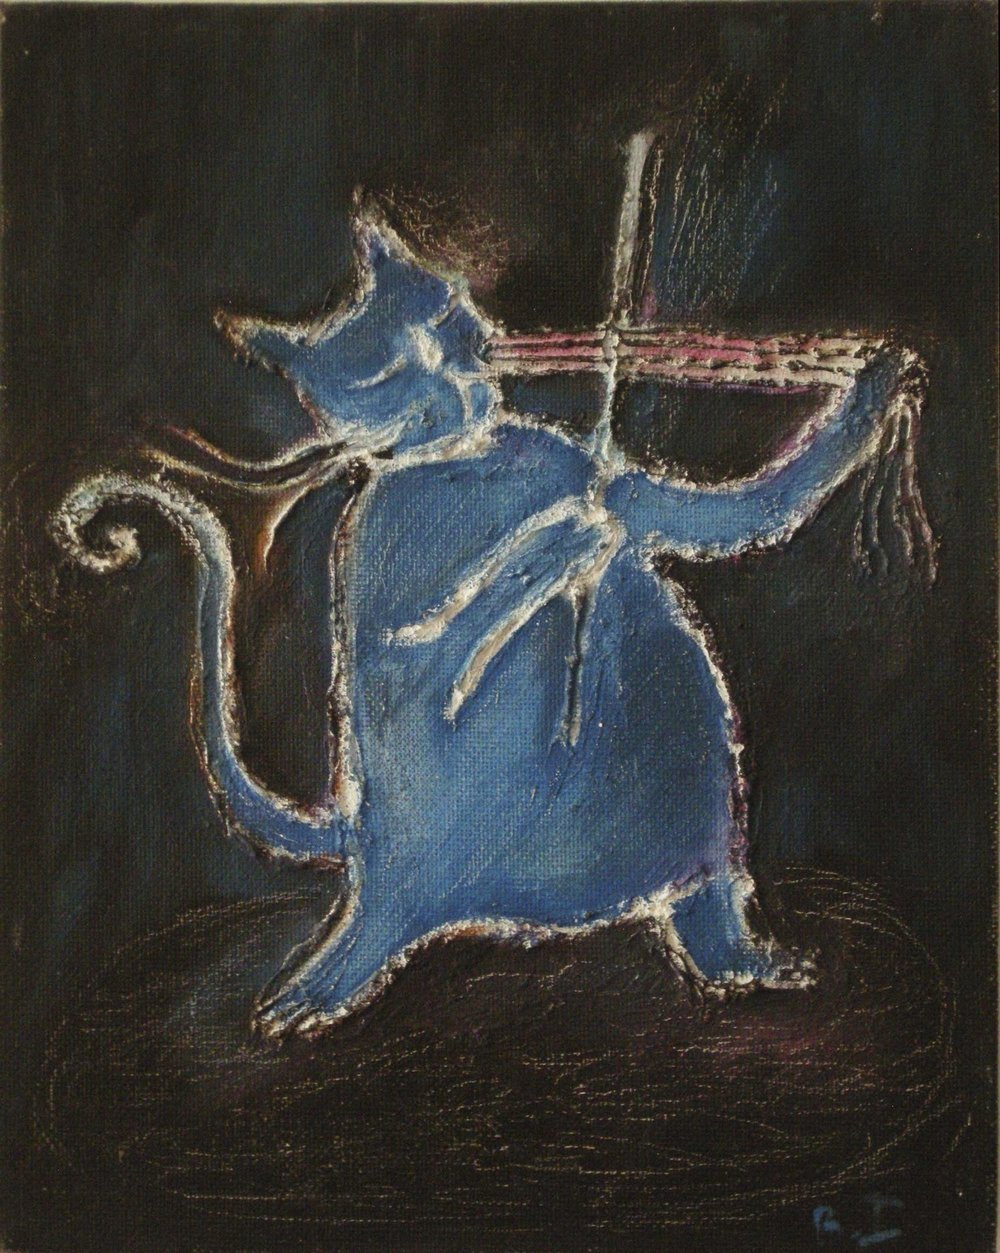 CAT VIOLIN (Blue) Oil on Canvass Board | 18 x 25.5 cm | 2010 Buy Framed £275.00